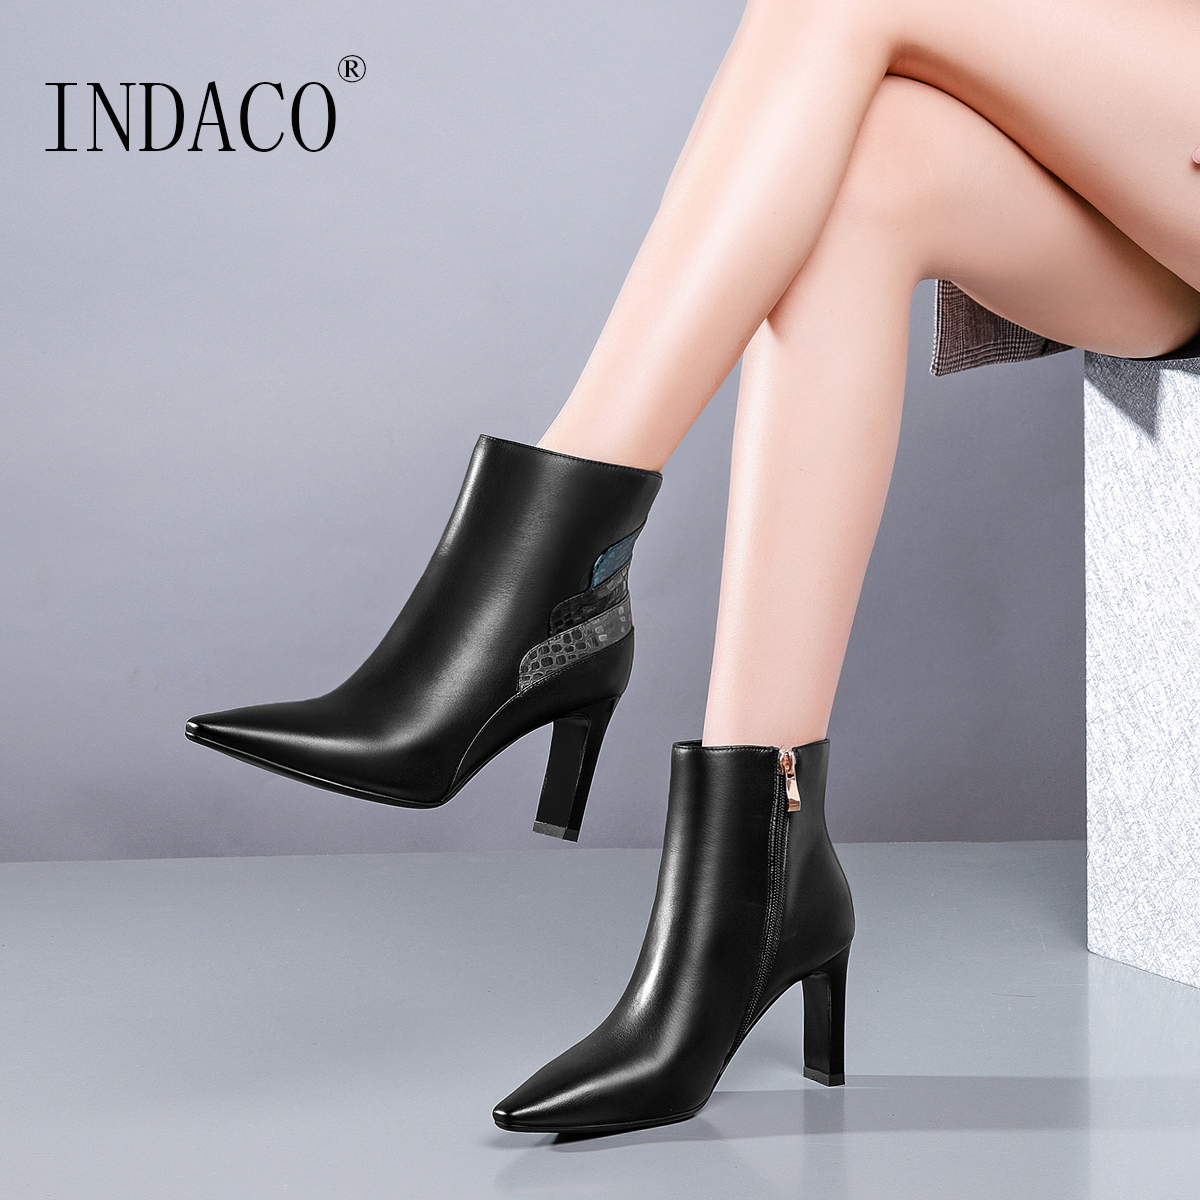 Ankle Boots for Women 2018 New Winter Boots Women Fashion Leather Boots Women Chaussures Femme 8cm цена